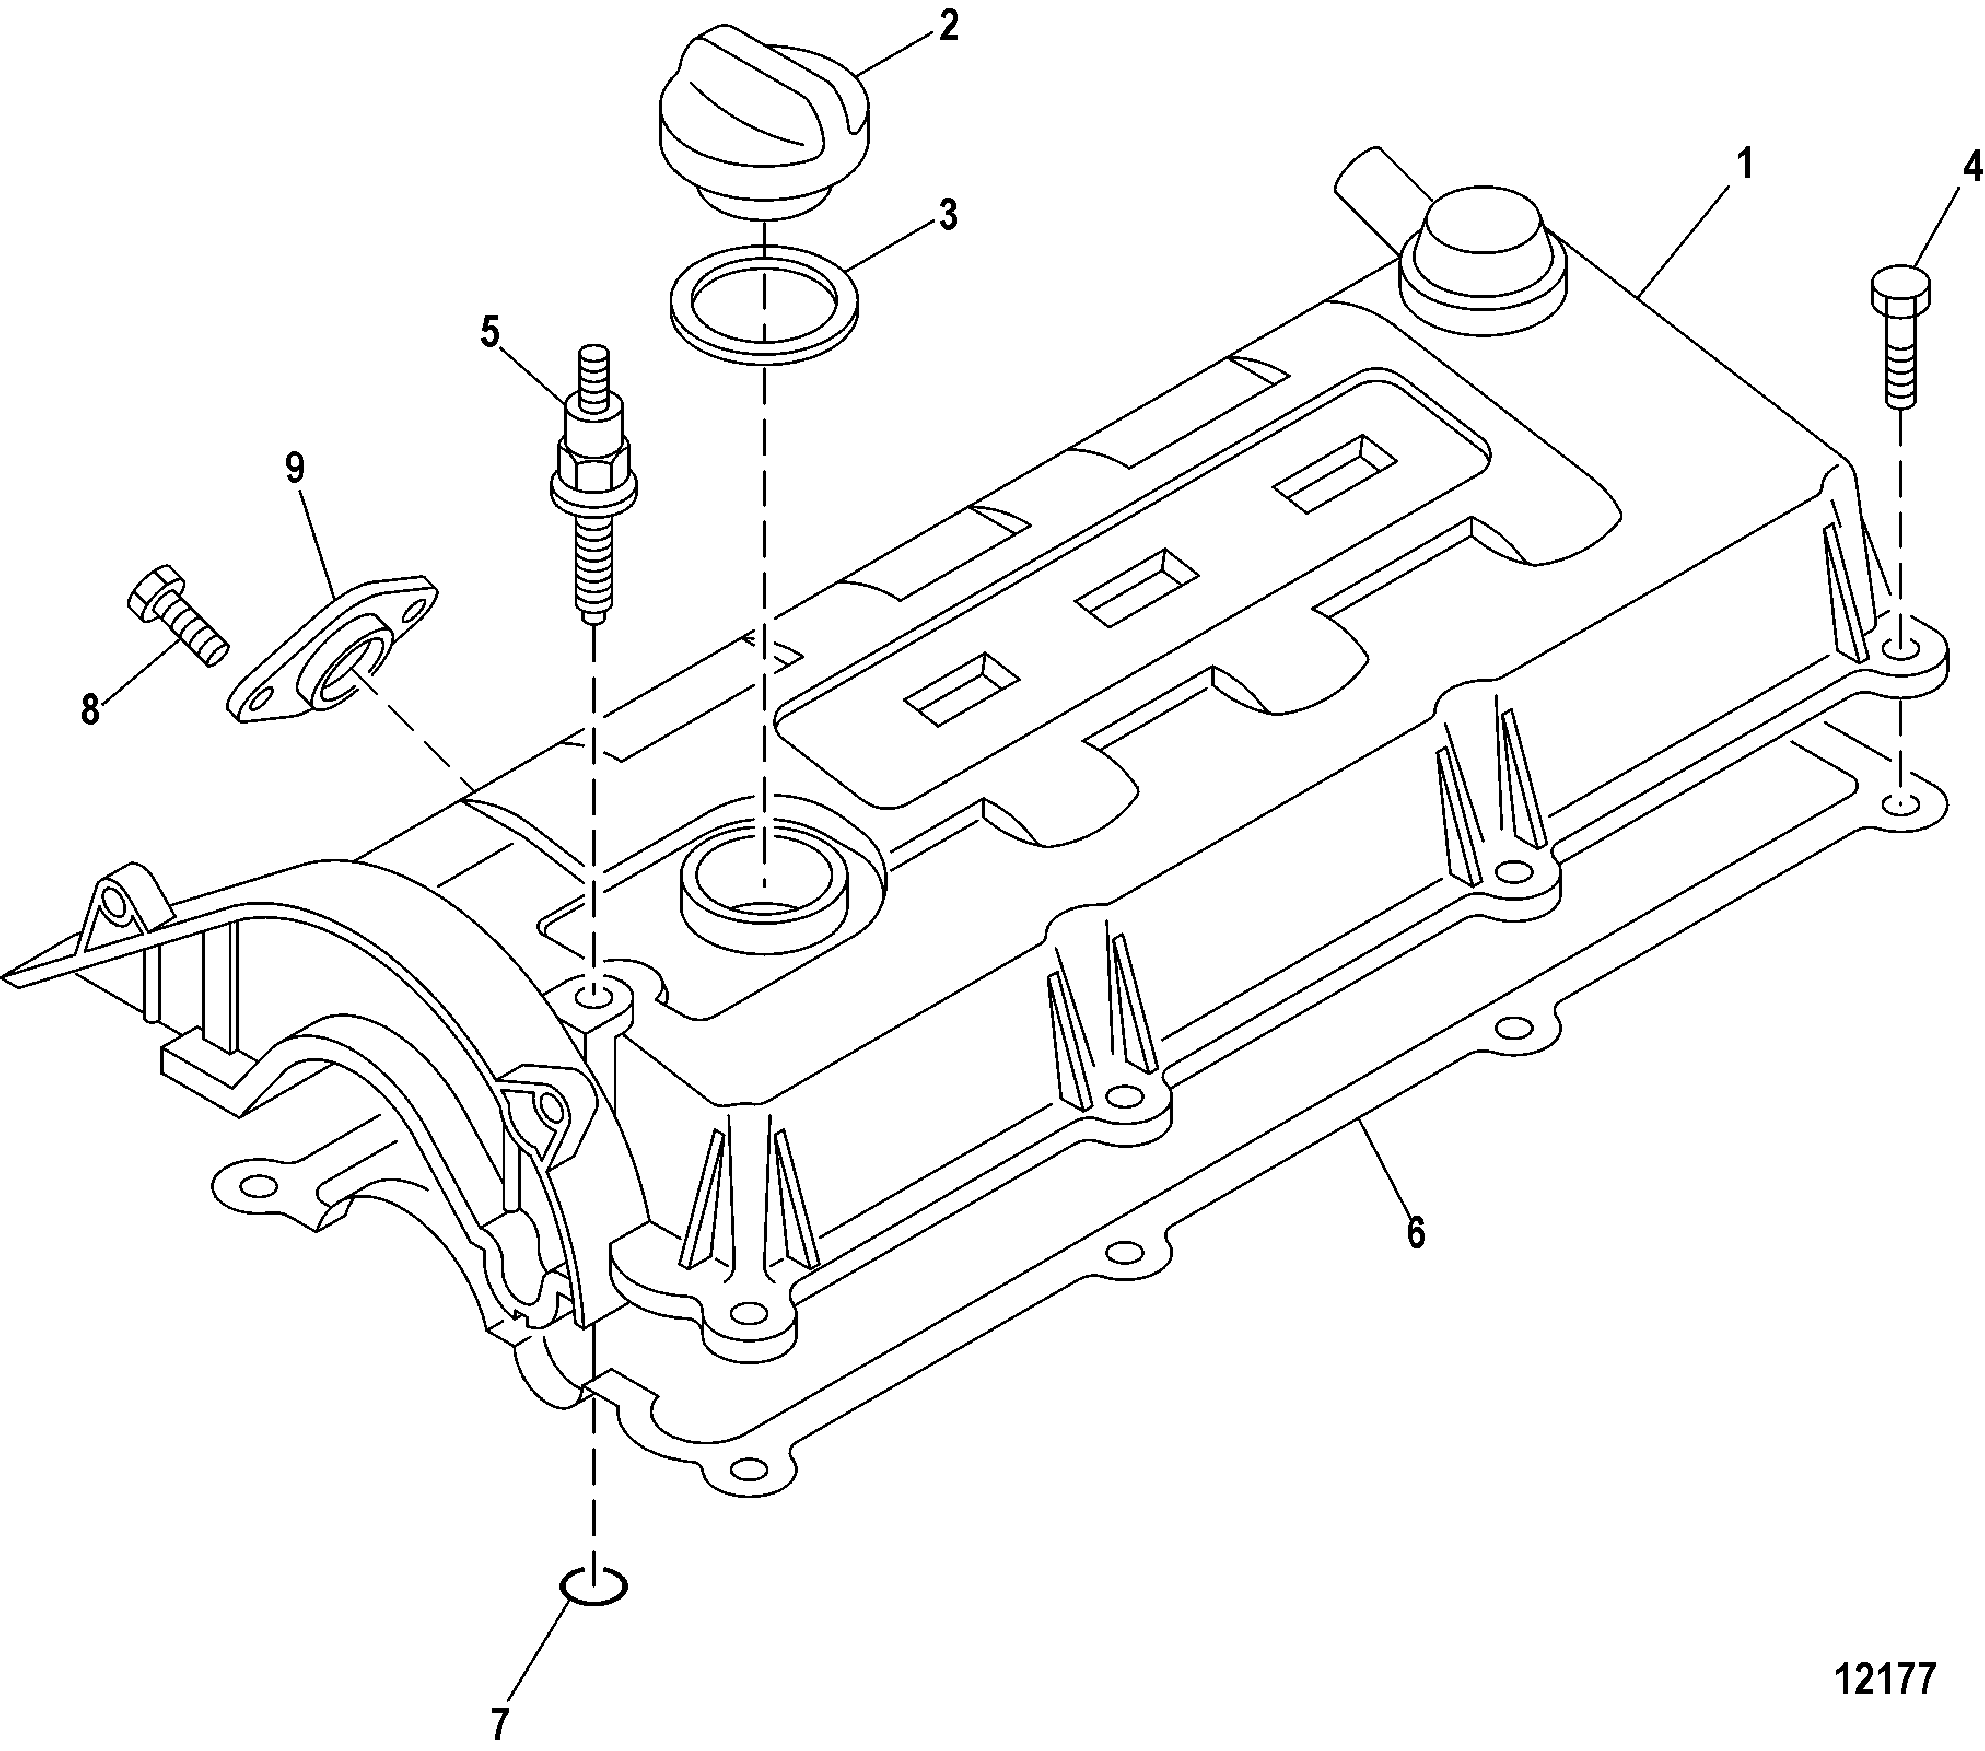 1947 ford 8n wiring diagram 6 volt